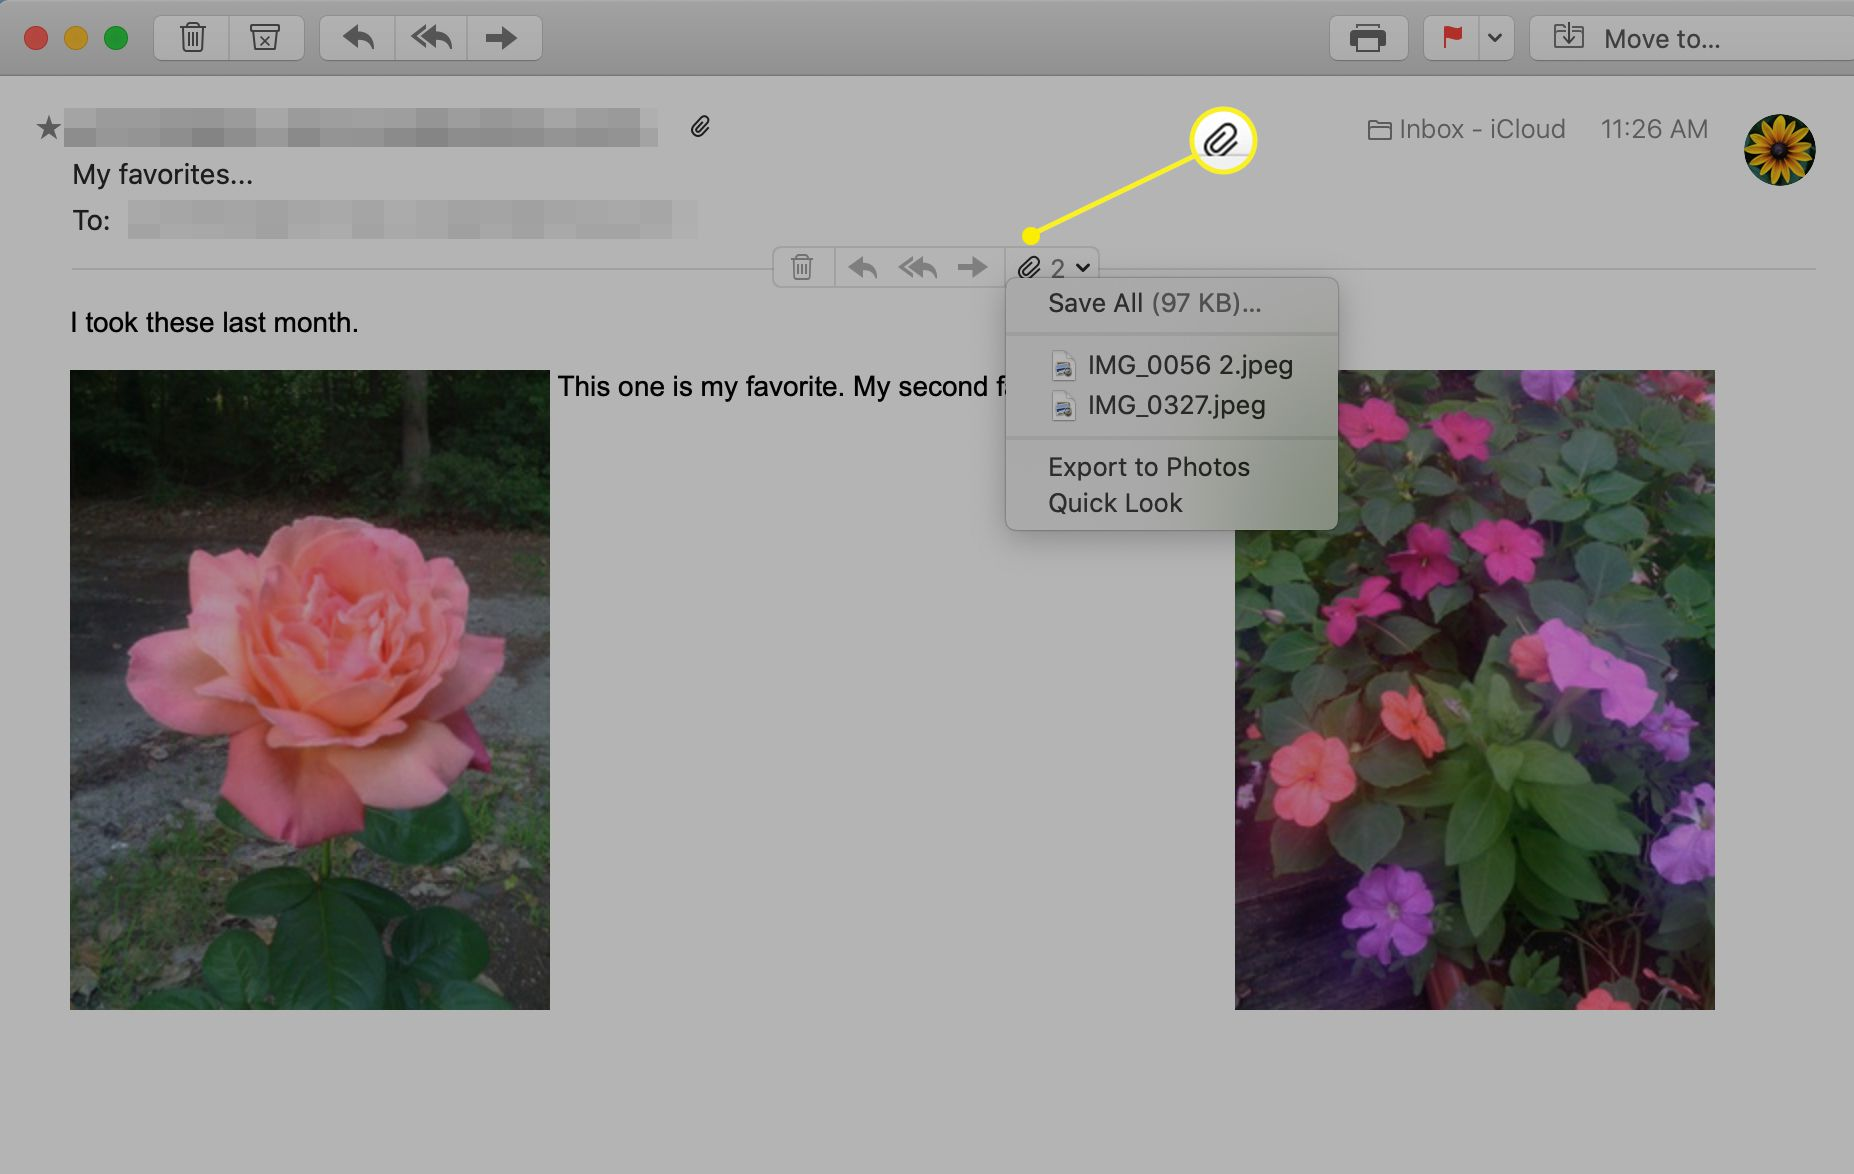 The paperclip selected on the Apple Mail action bar